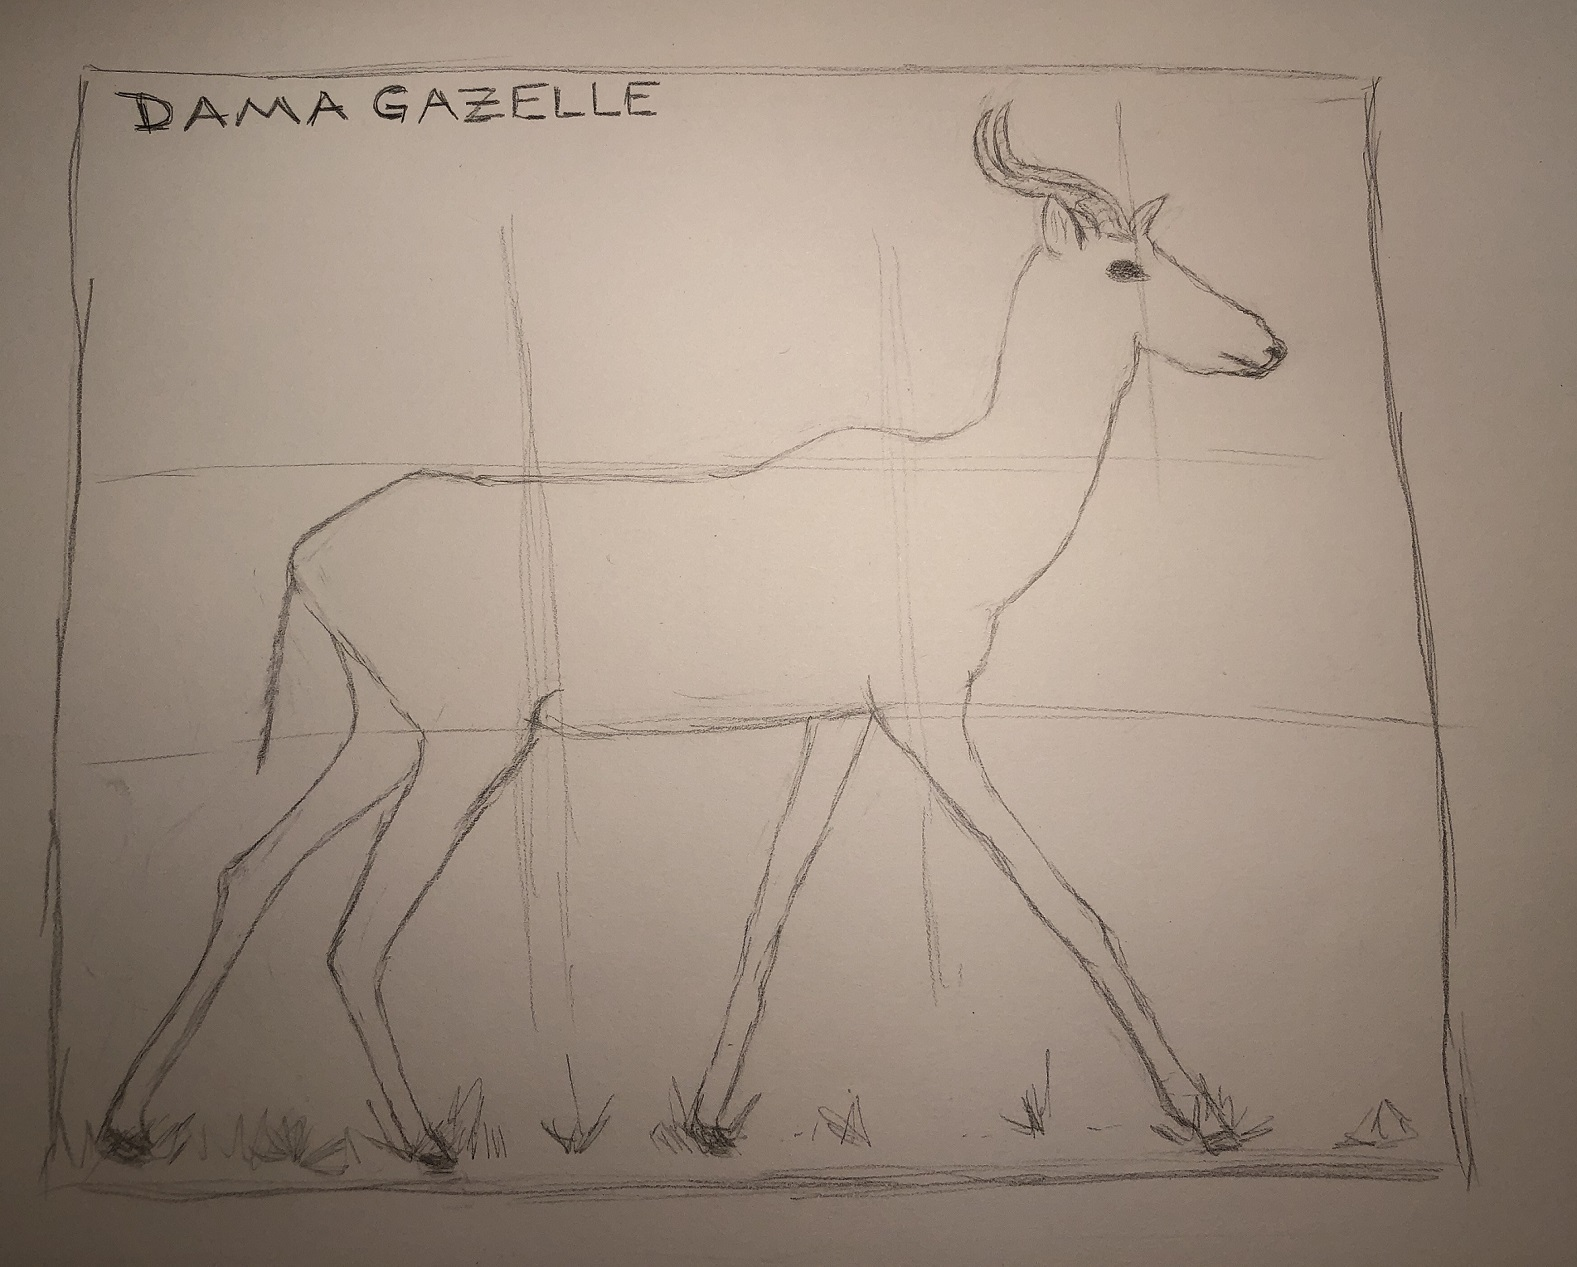 Dama Gazelle, from Africa